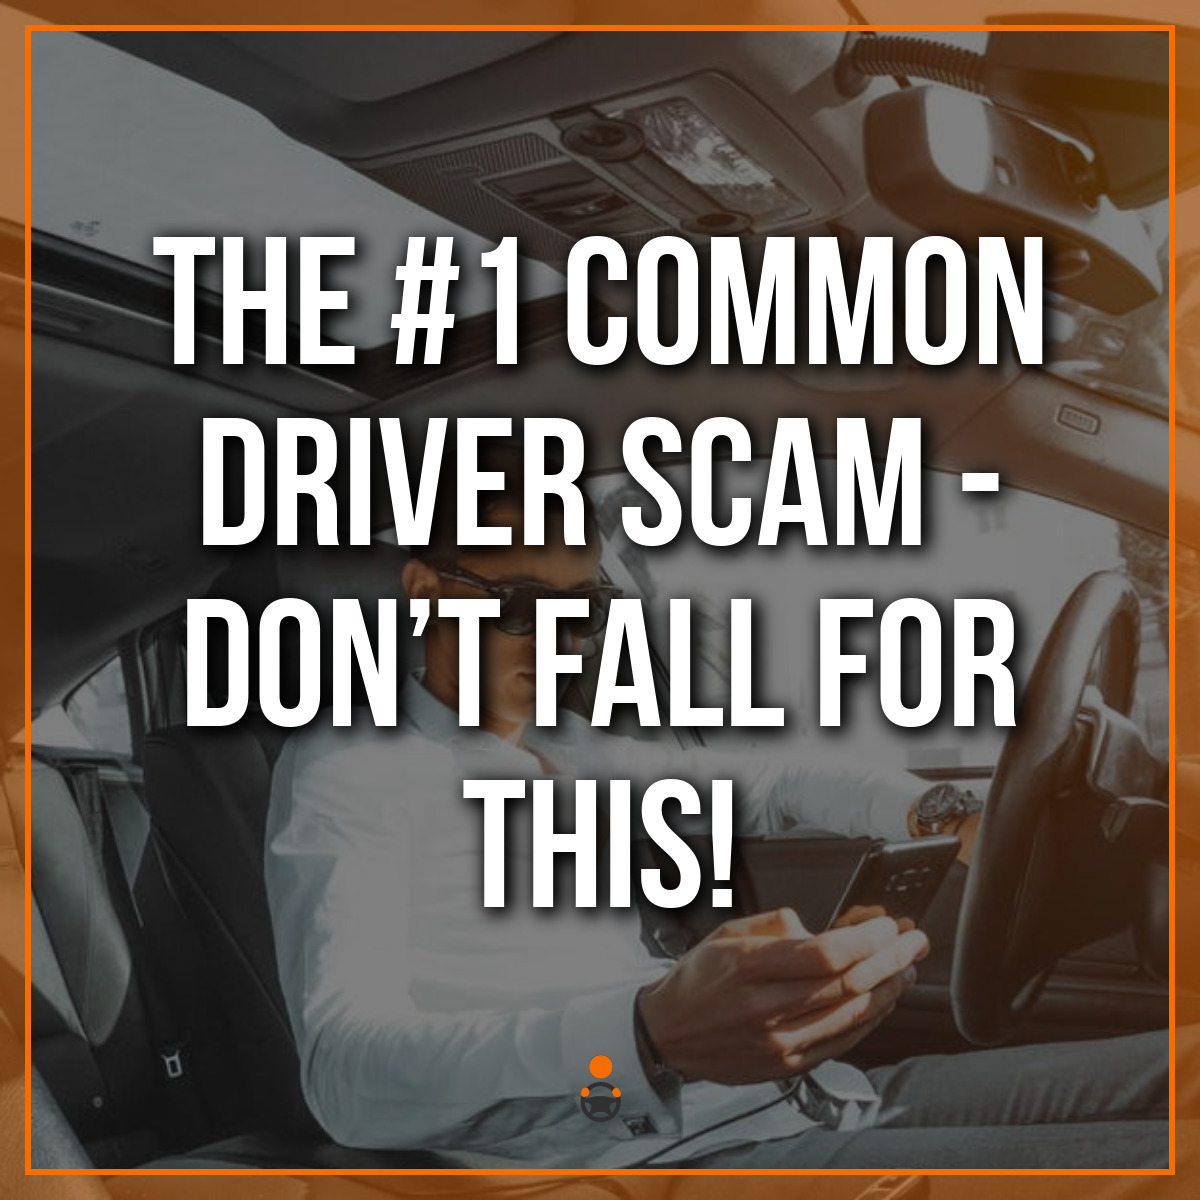 The #1 Common Driver Scam – Don't Fall for This!